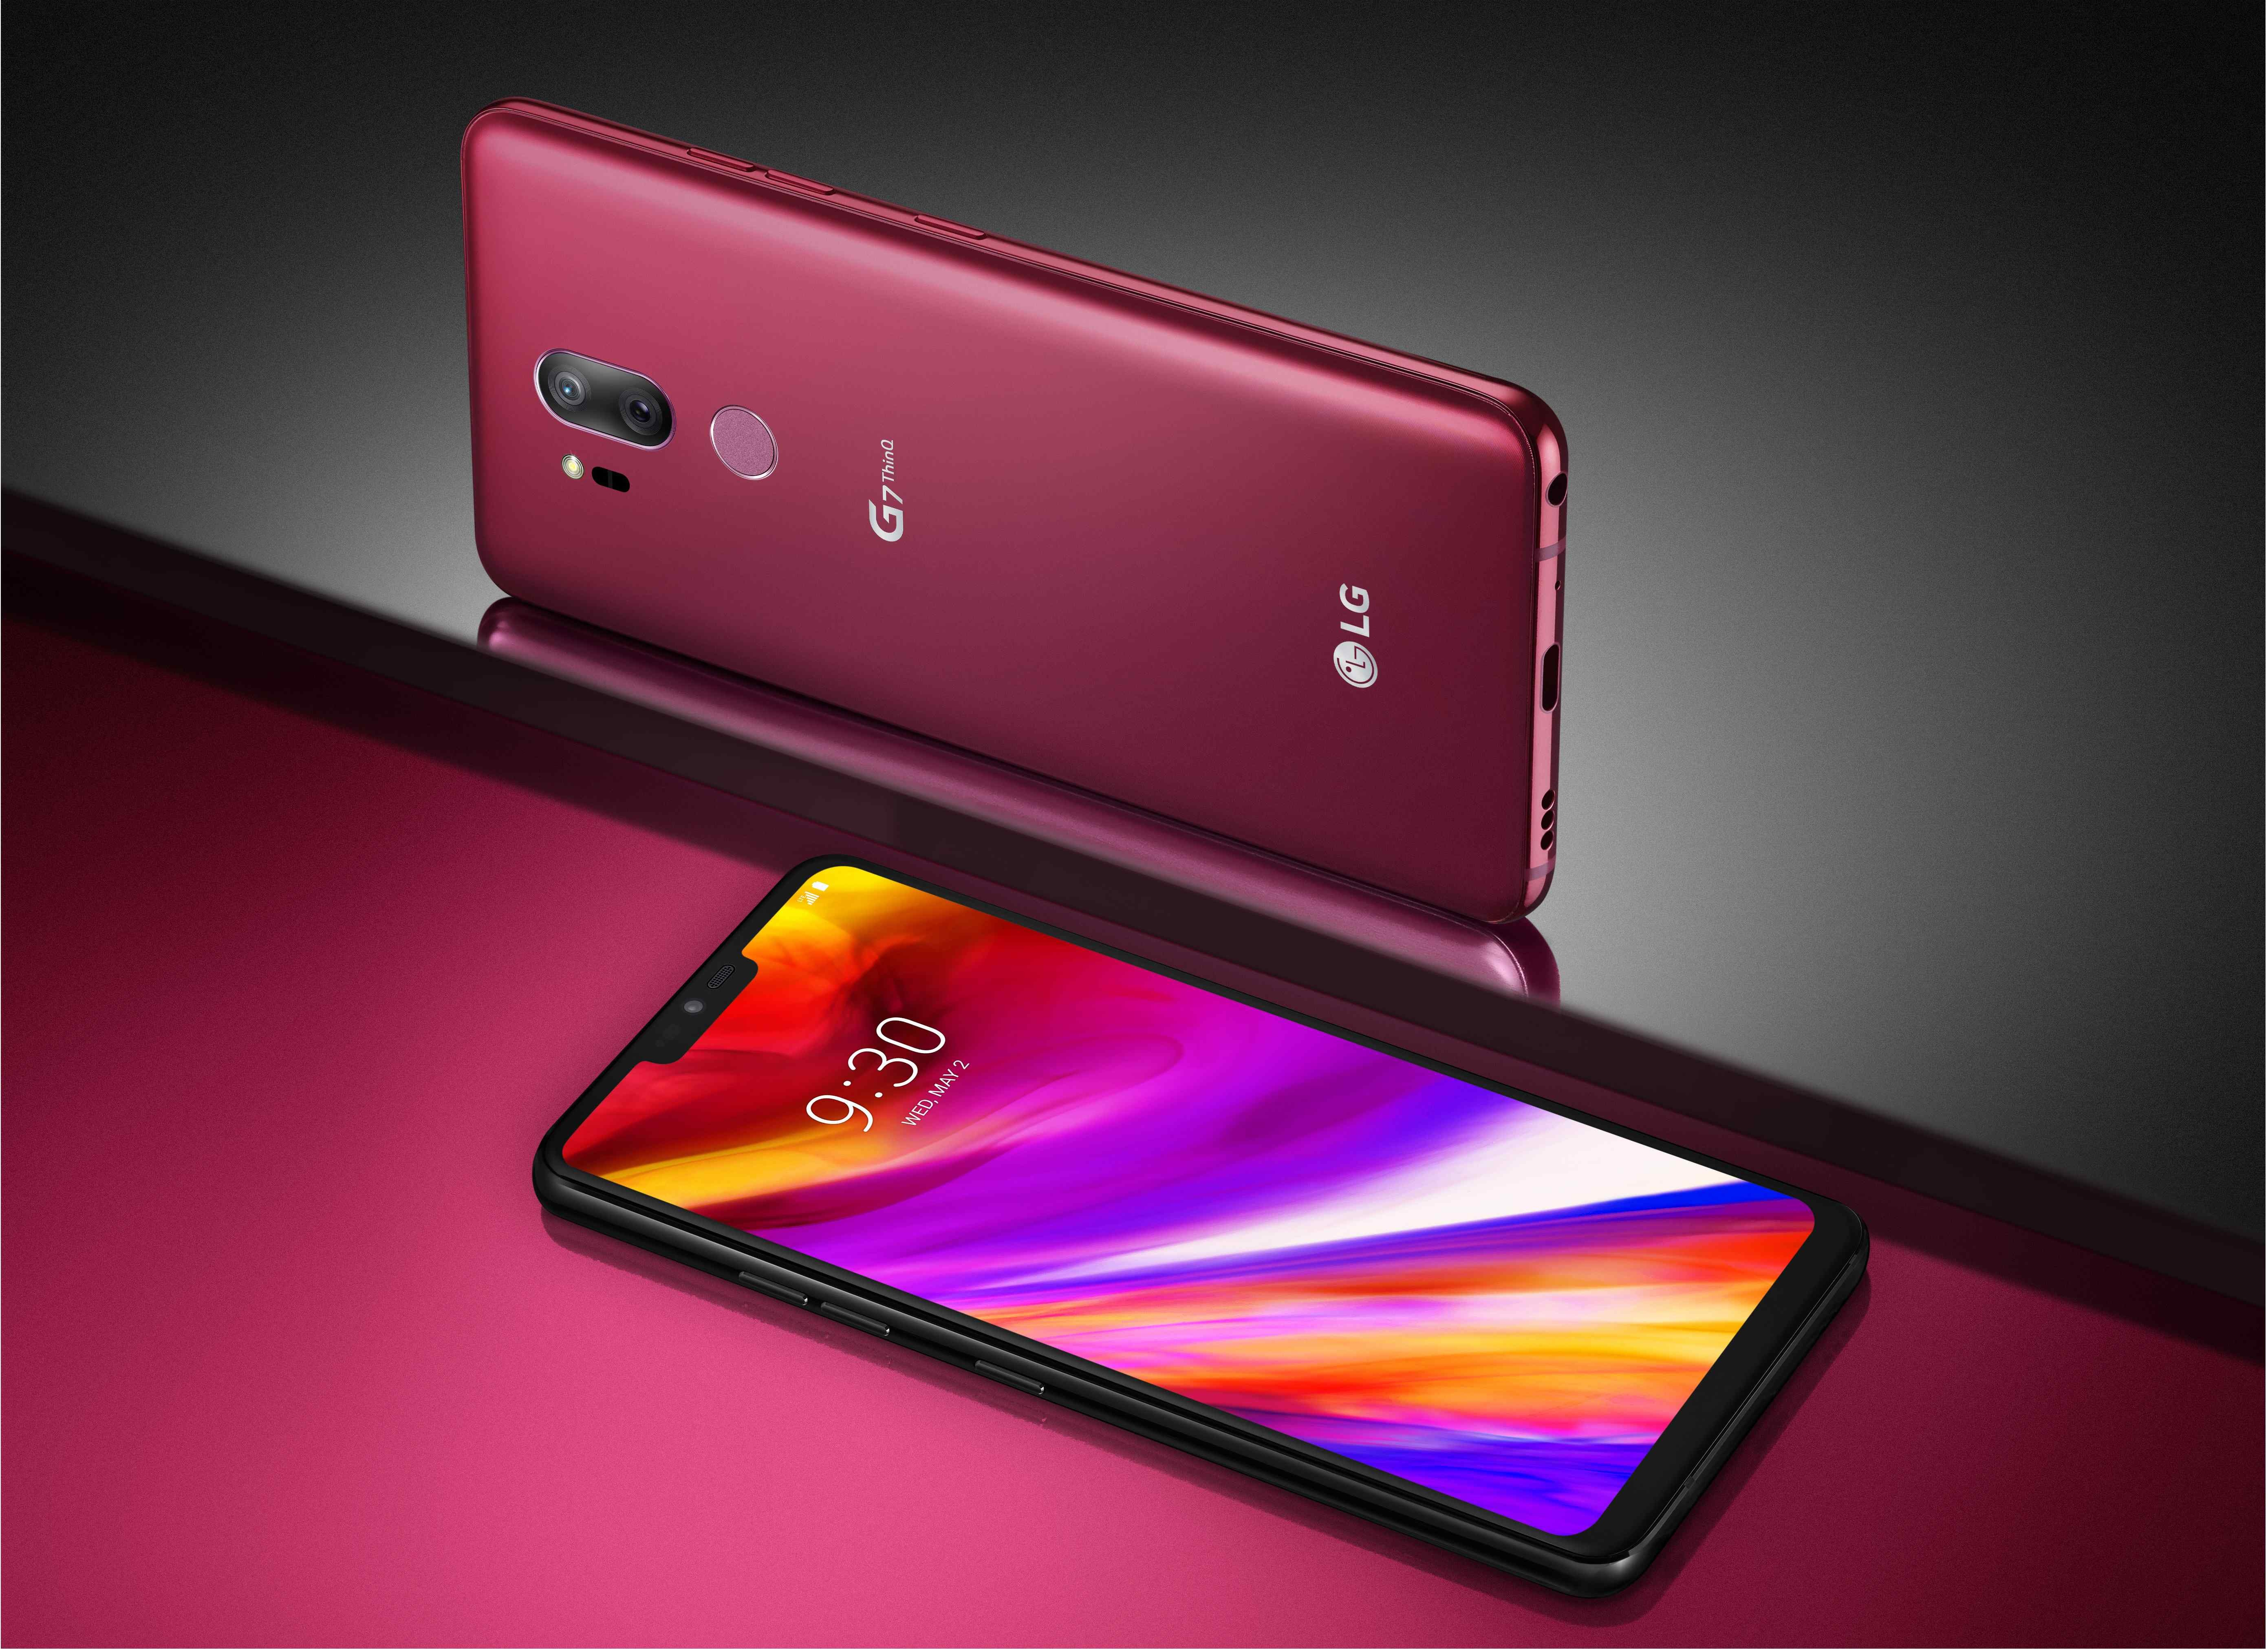 The front and rear view of the LG G7 ThinQ in Raspberry Rose against a gray and pink background